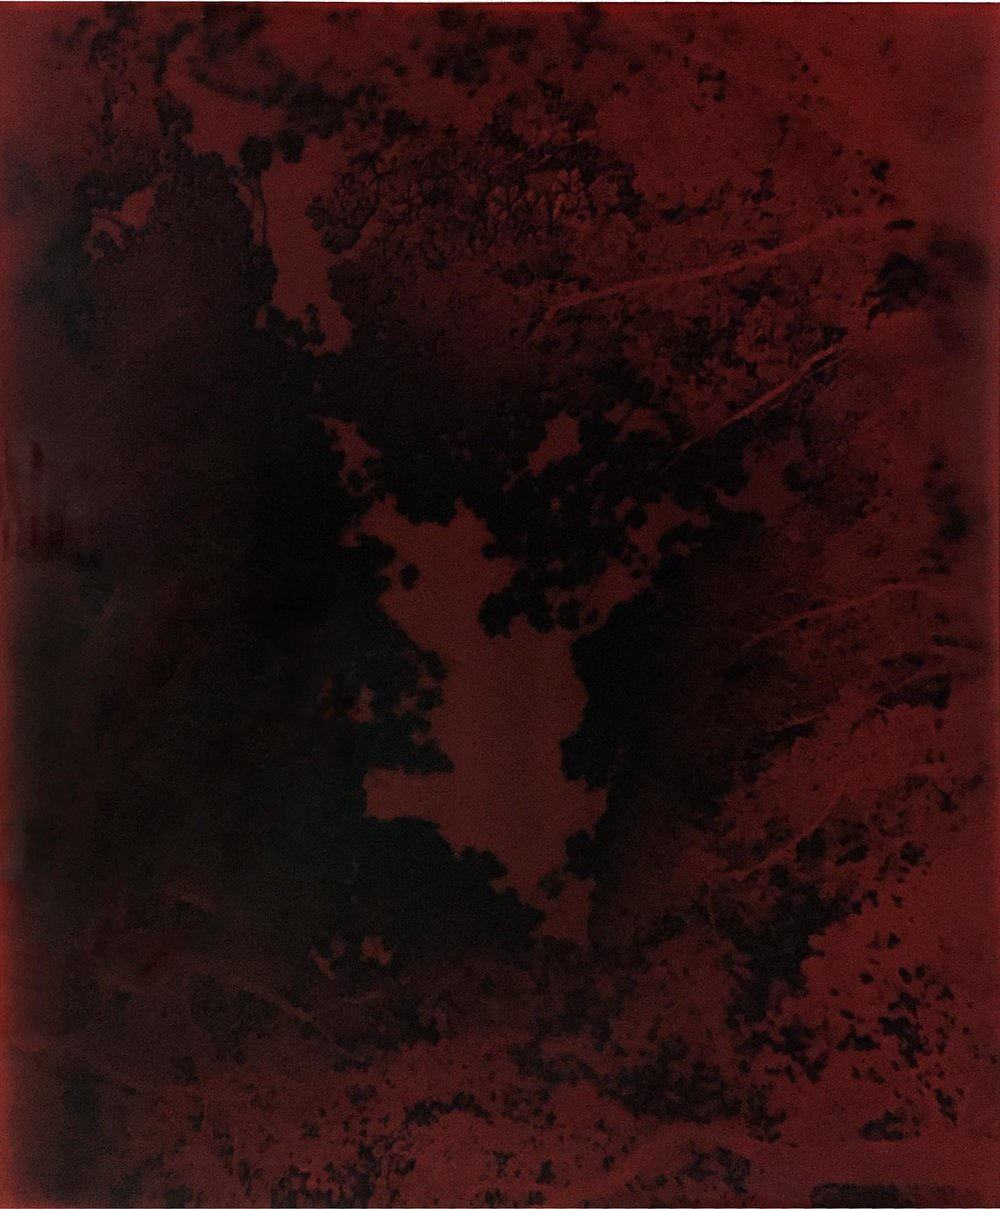 TILLMANS_ThreeParkWorkPiece_Red.jpg